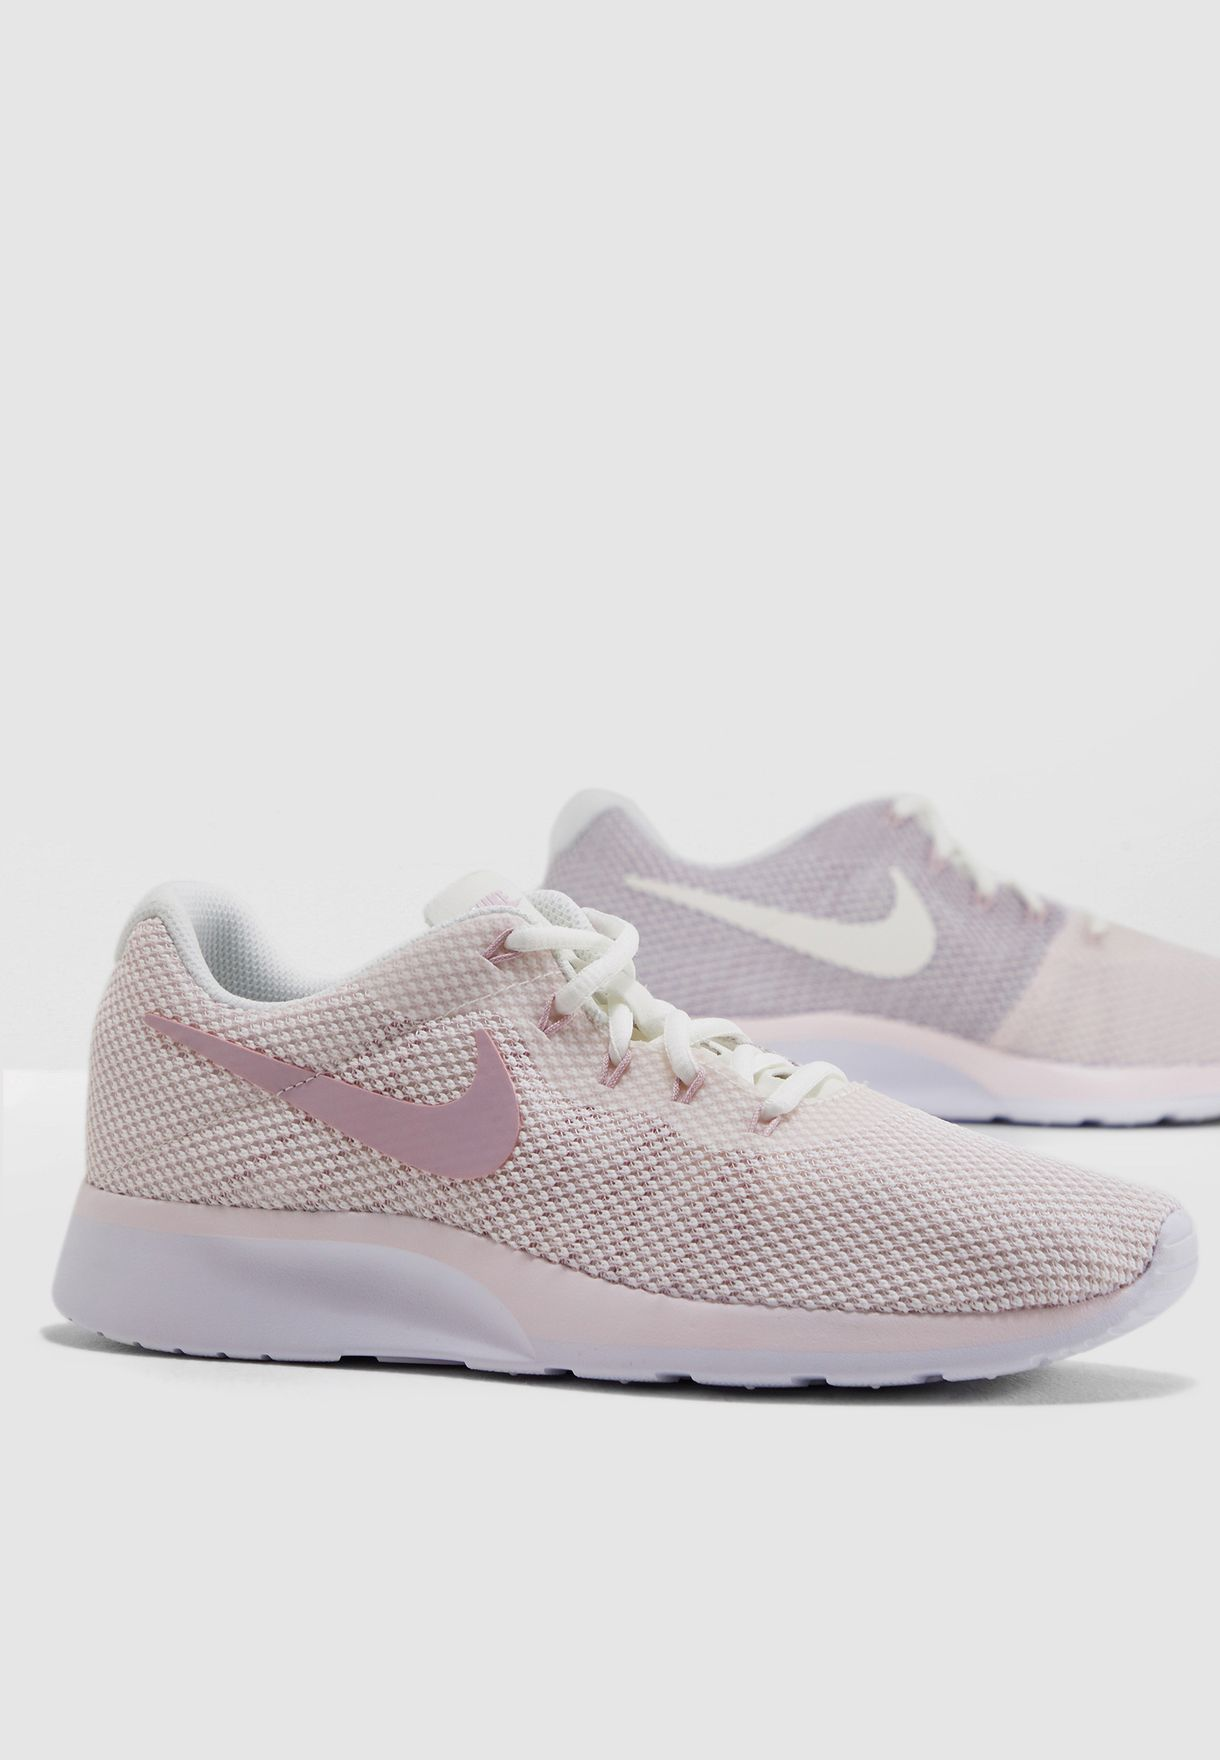 best website cbb66 ec4a9 Shop Nike pink Tanjun Racer 921668-104 for Women in Saudi -